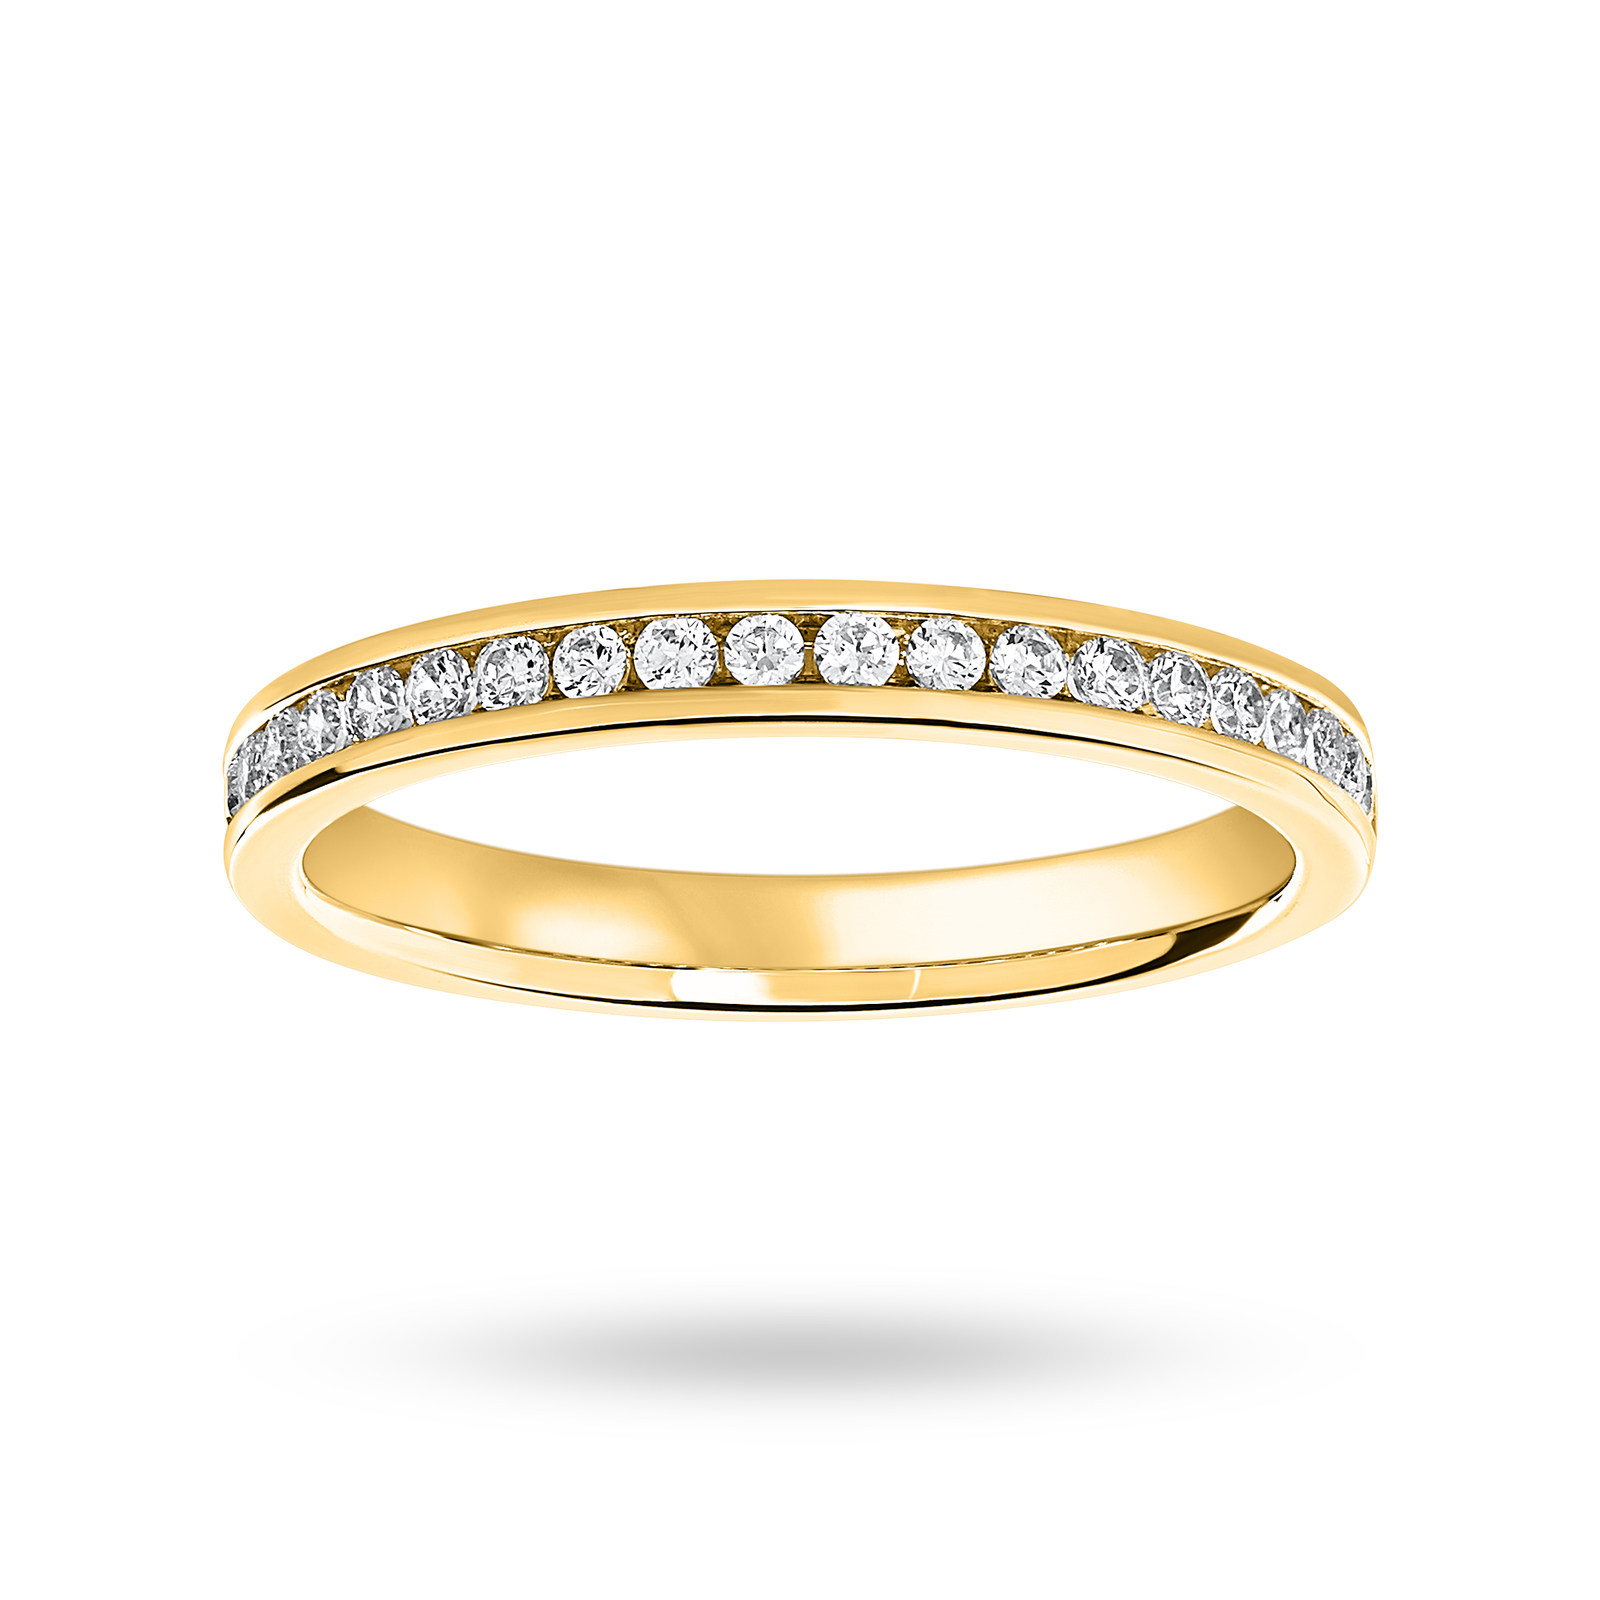 9ct Yellow Gold 0.25ct Half Eternity Ring - Ring Size O